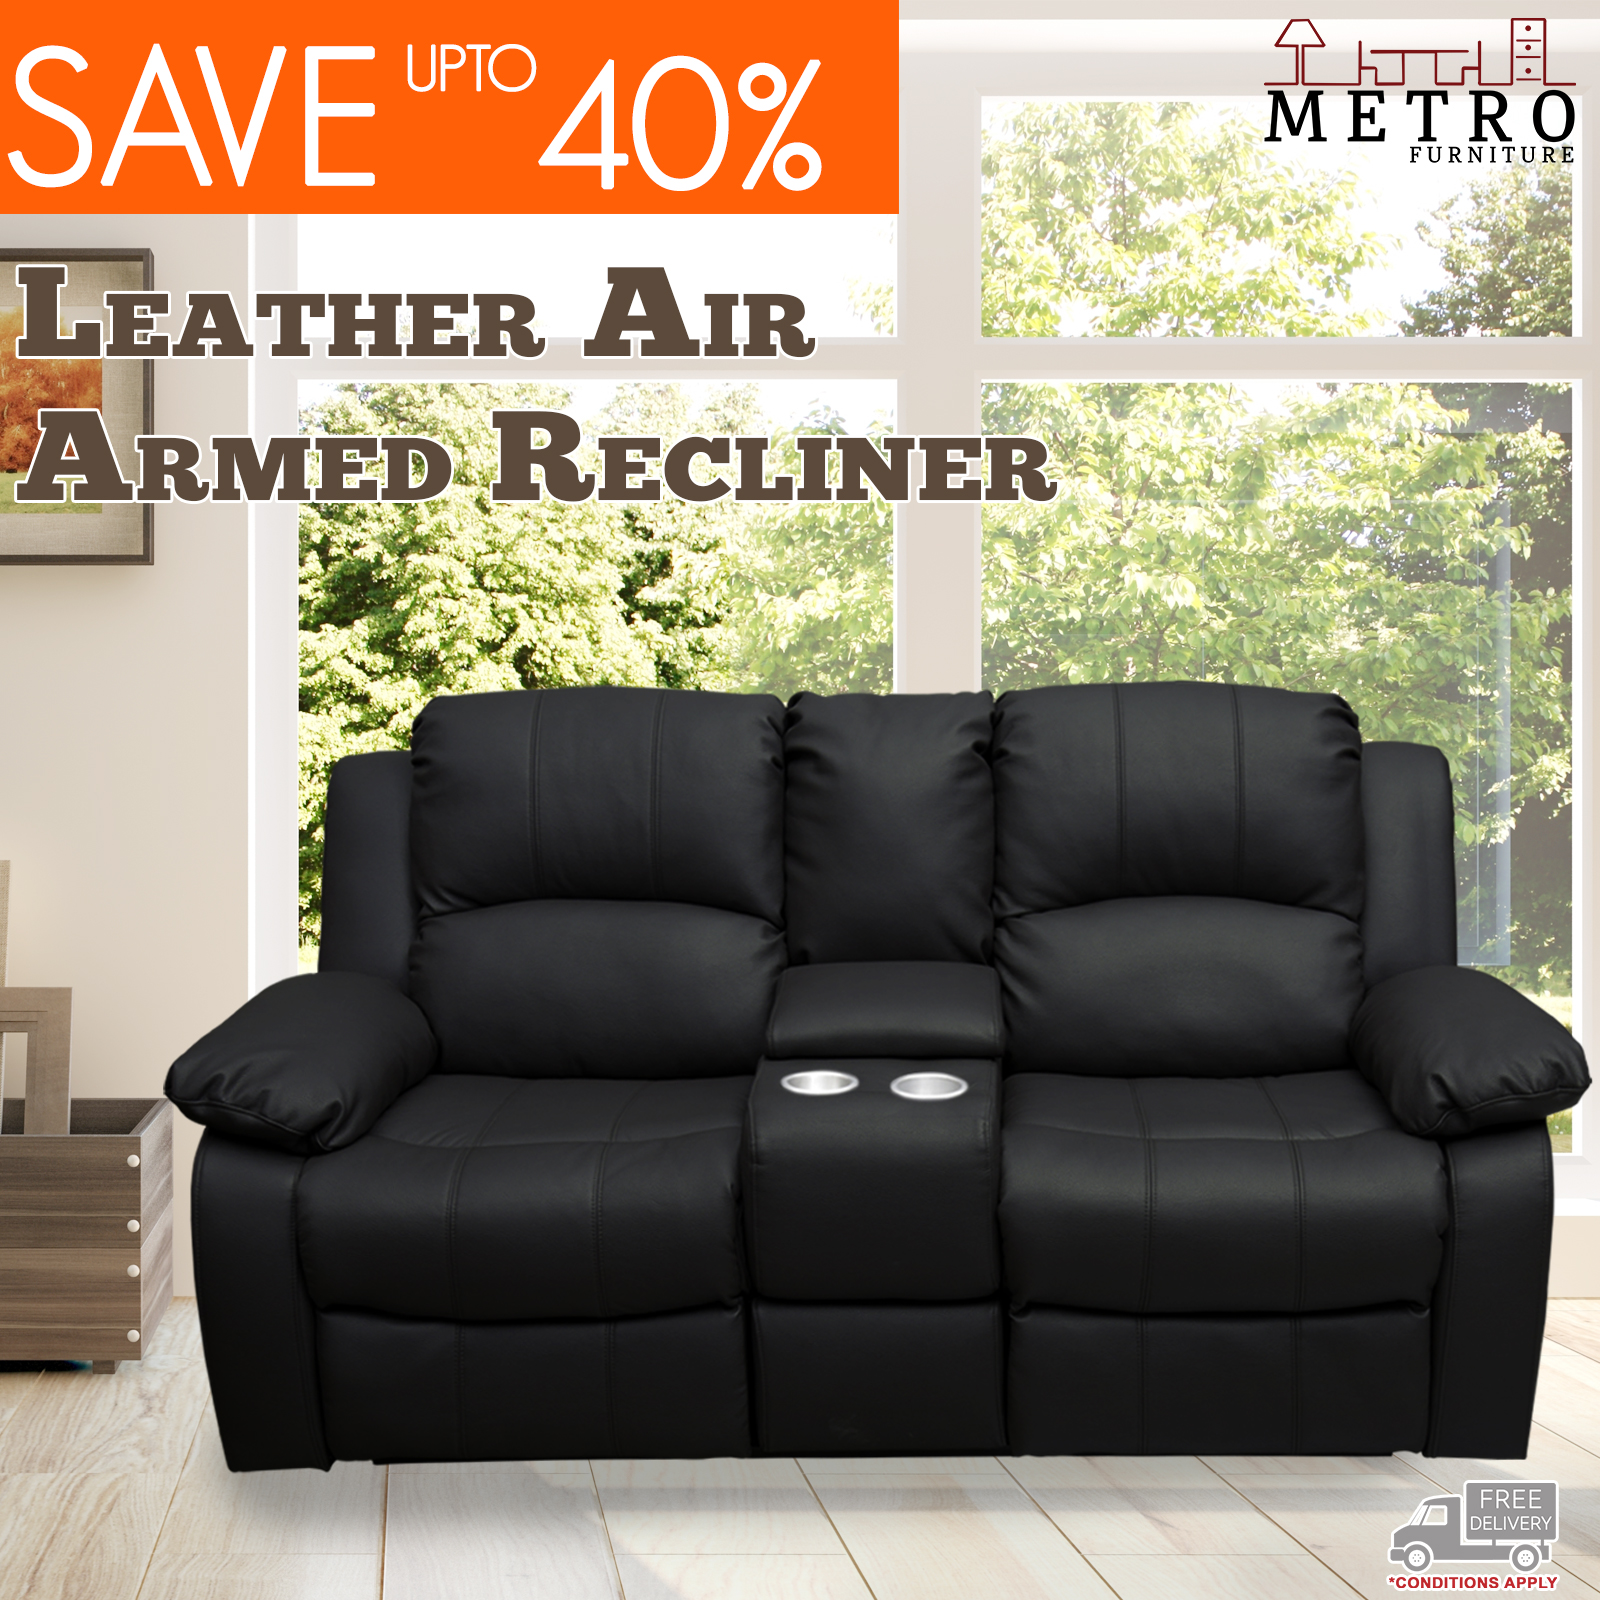 1 seater armed black recliners sofa